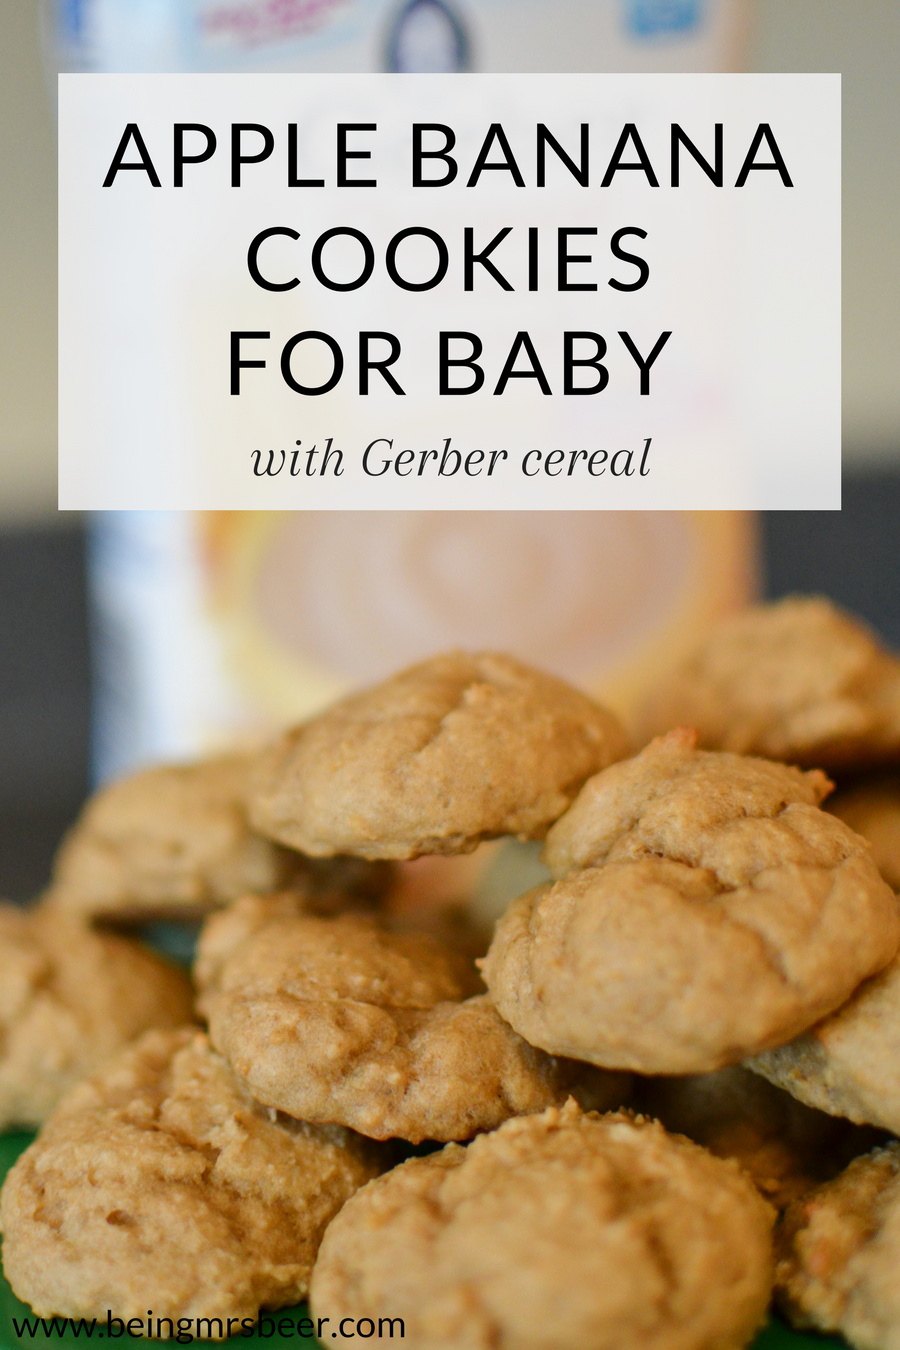 #ad These Apple Banana Cookies, made with Gerber Cereal, are the perfect treat for your little ones! Easy to make (less than 30 minutes), full of iron and calcium, and delicious. Your baby will love these cookies!